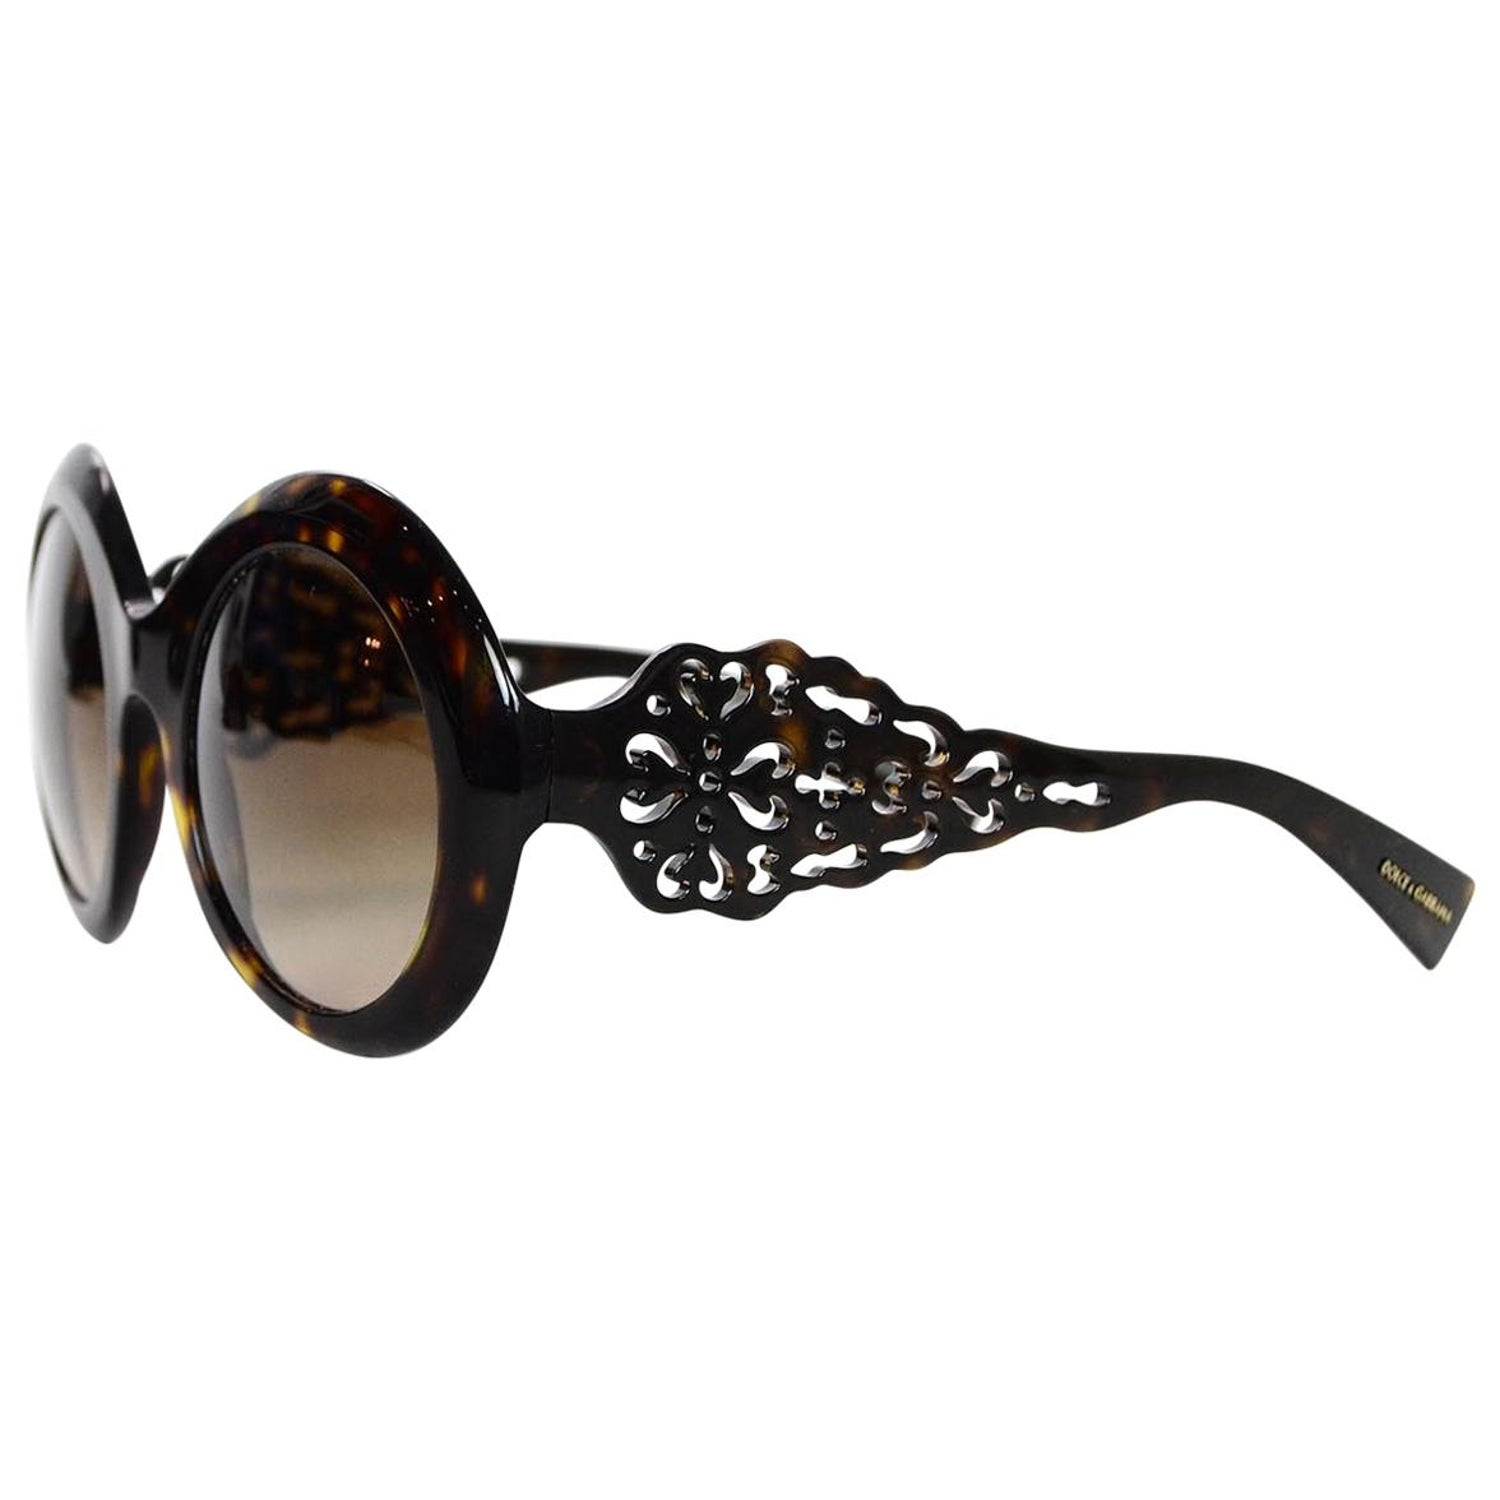 a11b29770831 Dolce and Gabbana Round Brown Tortoise Sunglasses W  Filigree Design For  Sale at 1stdibs